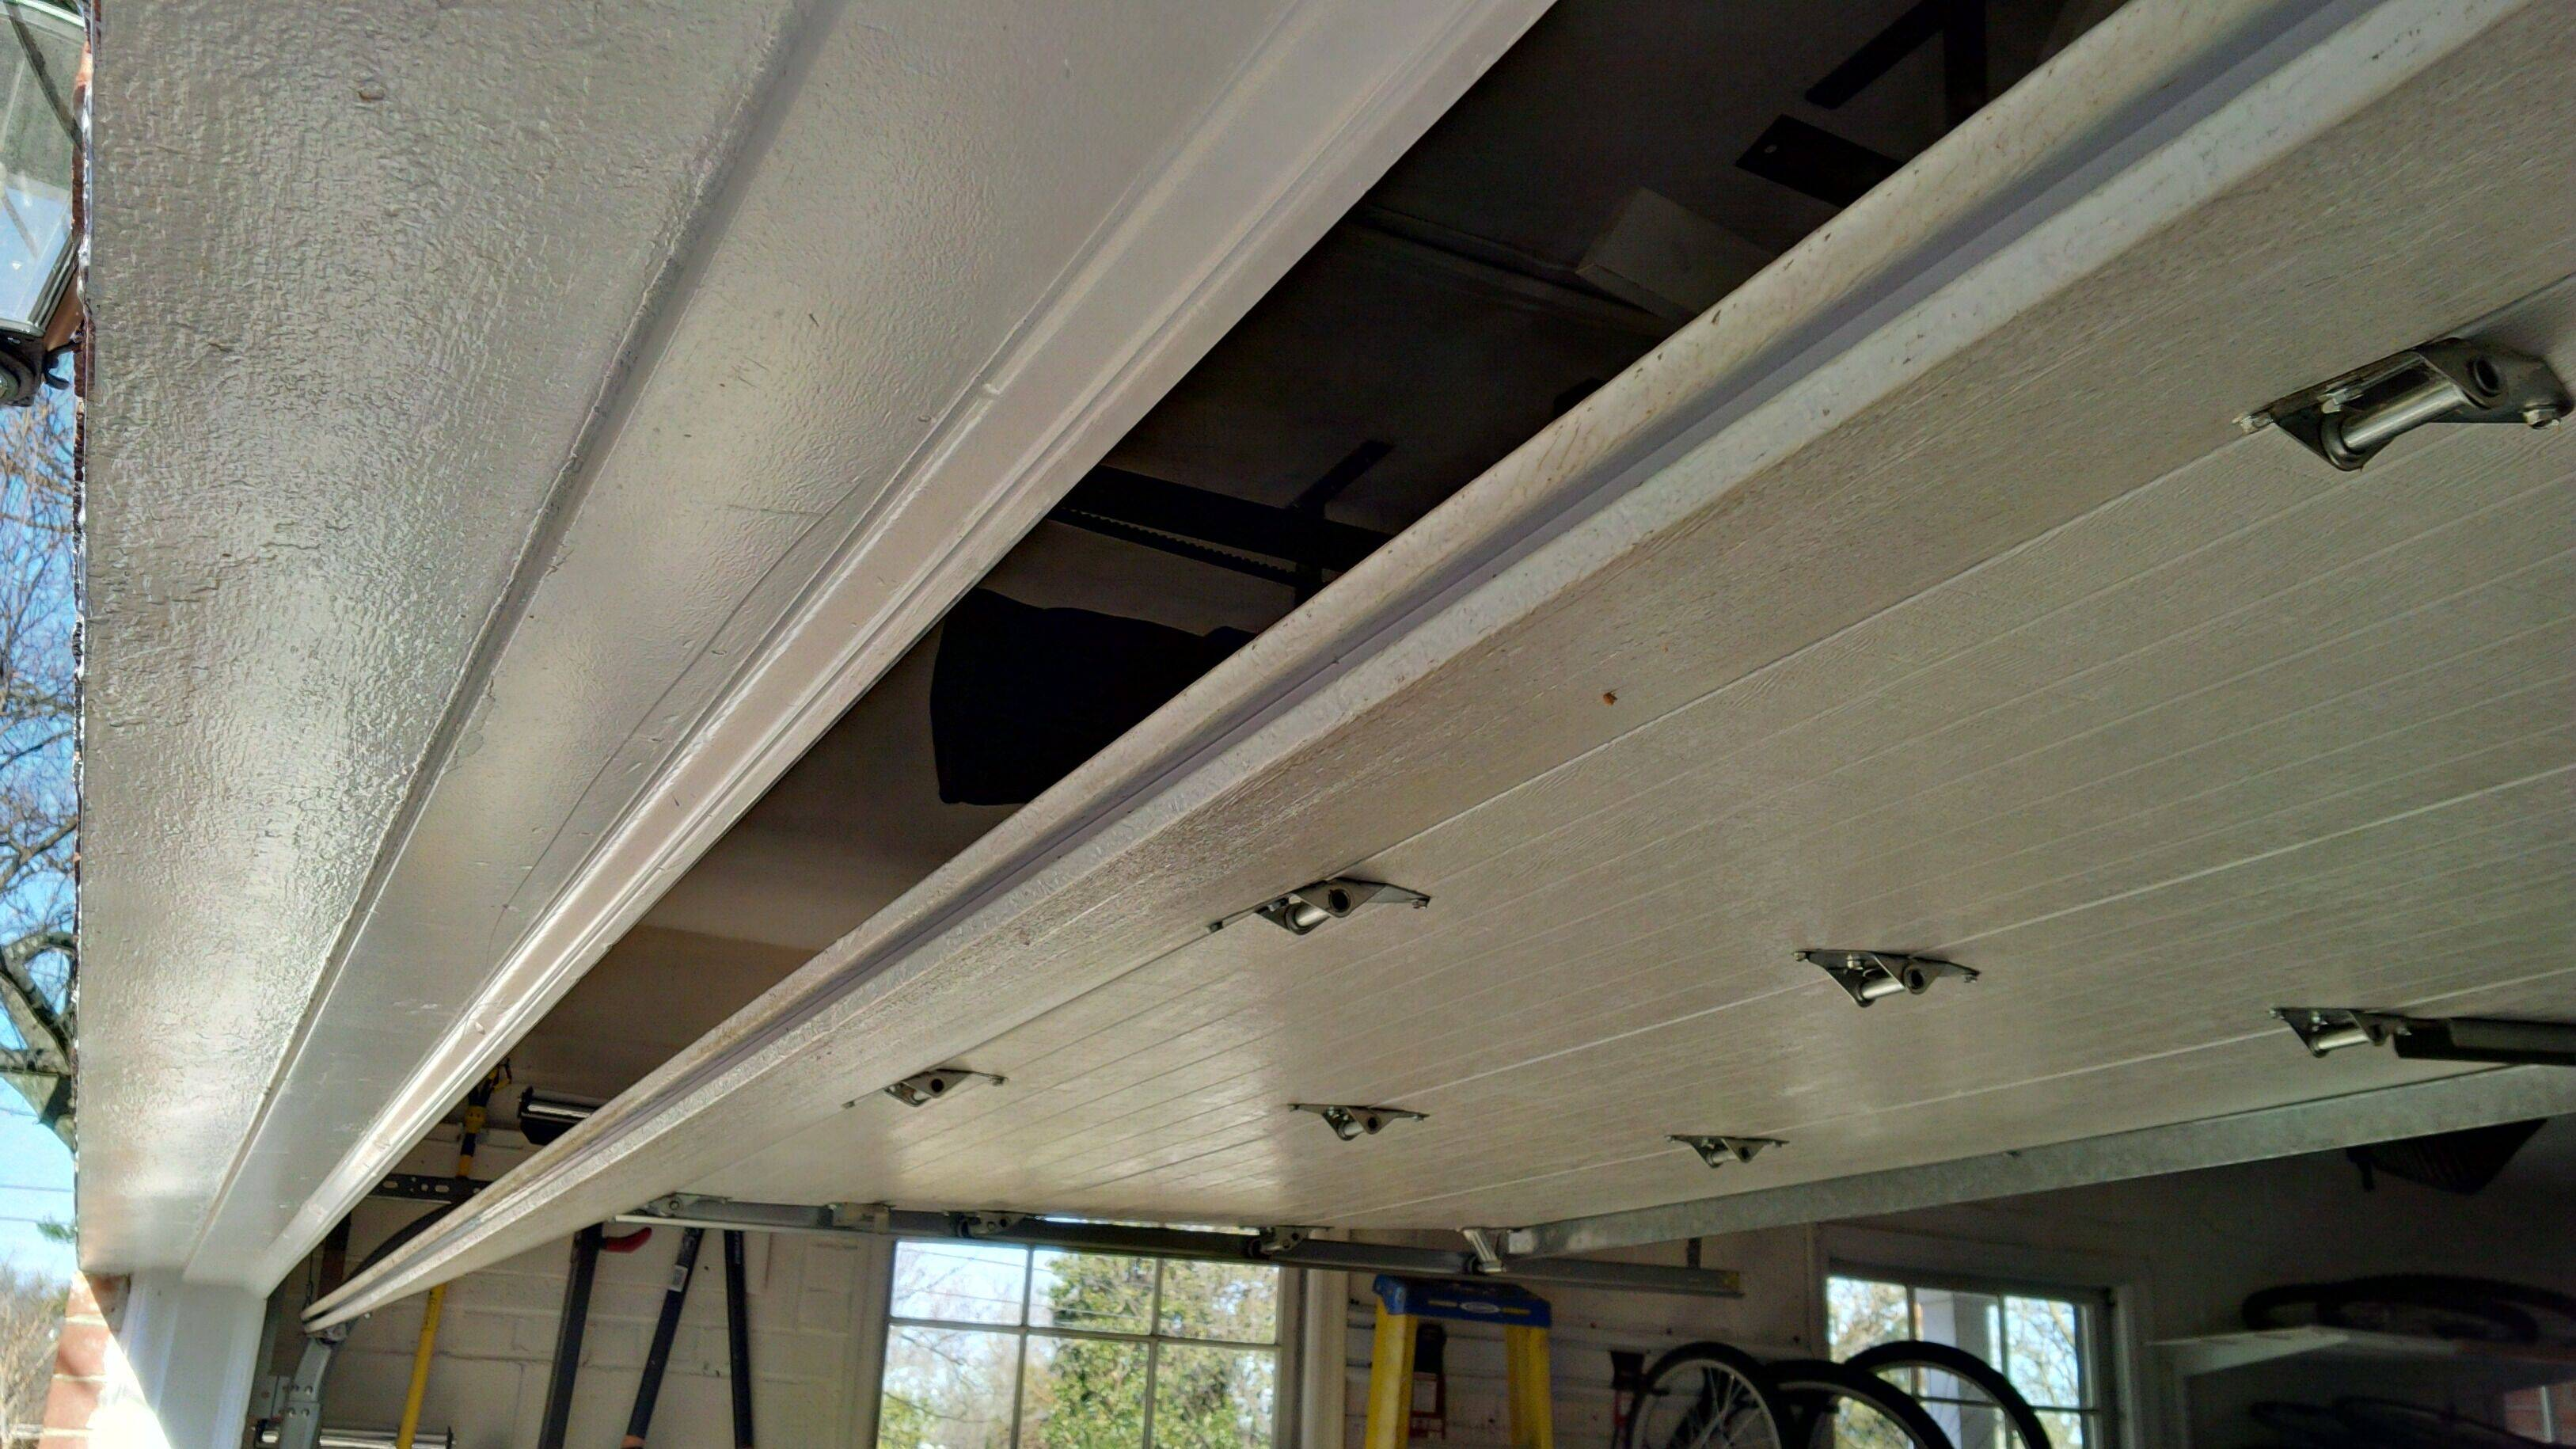 Garage Door Weather Stripping How To Install Is It Easy To Change The Bottom Weather Stripping On Garage Door